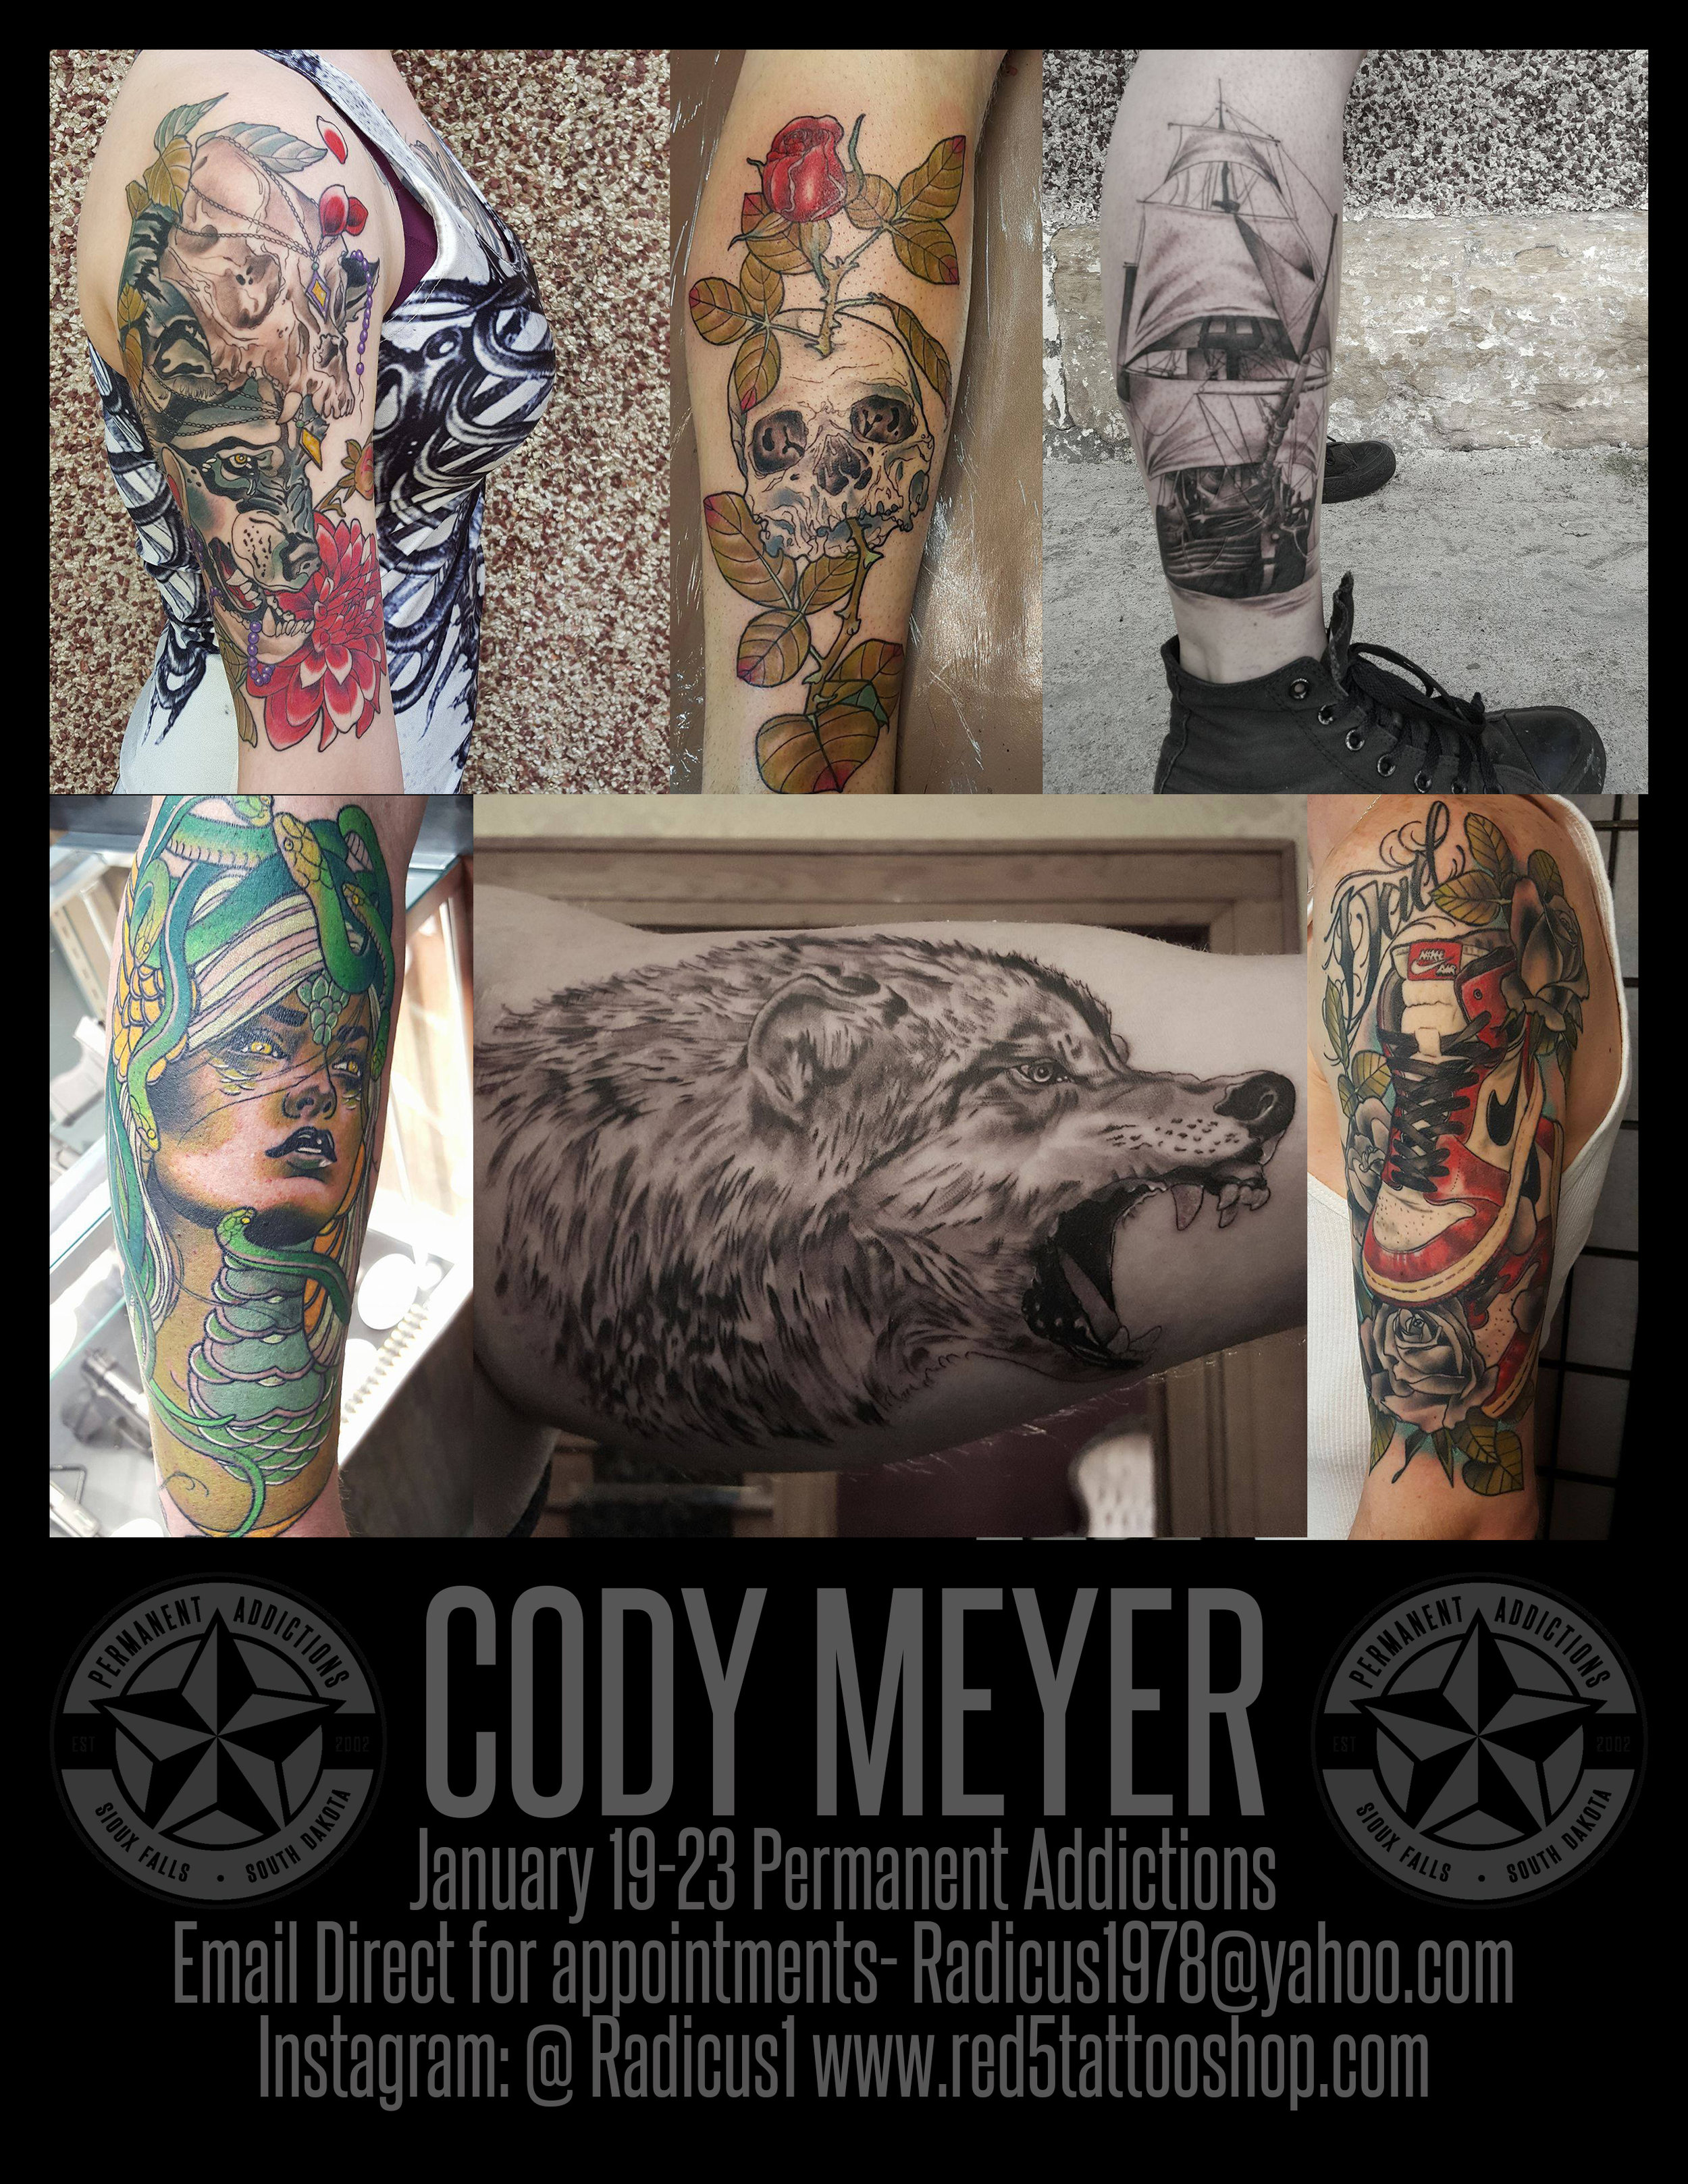 Next up we have our good friend Cody Meyer coming from Mecca Tattoo in Mankato, Minnesota. Cody is a South Dakota boy and we are stoked to have him back. This is a rare chance to get a tattoo from a tattooer who has traveled the world perfecting his craft. He has a published book of his art, he does killer tattoos, and he is a friend and all around great dude. The flier above gives you most of the detail you need. If you have additional questions about time with Cody, please contact him. DON'T SLEEP ON THIS!!!